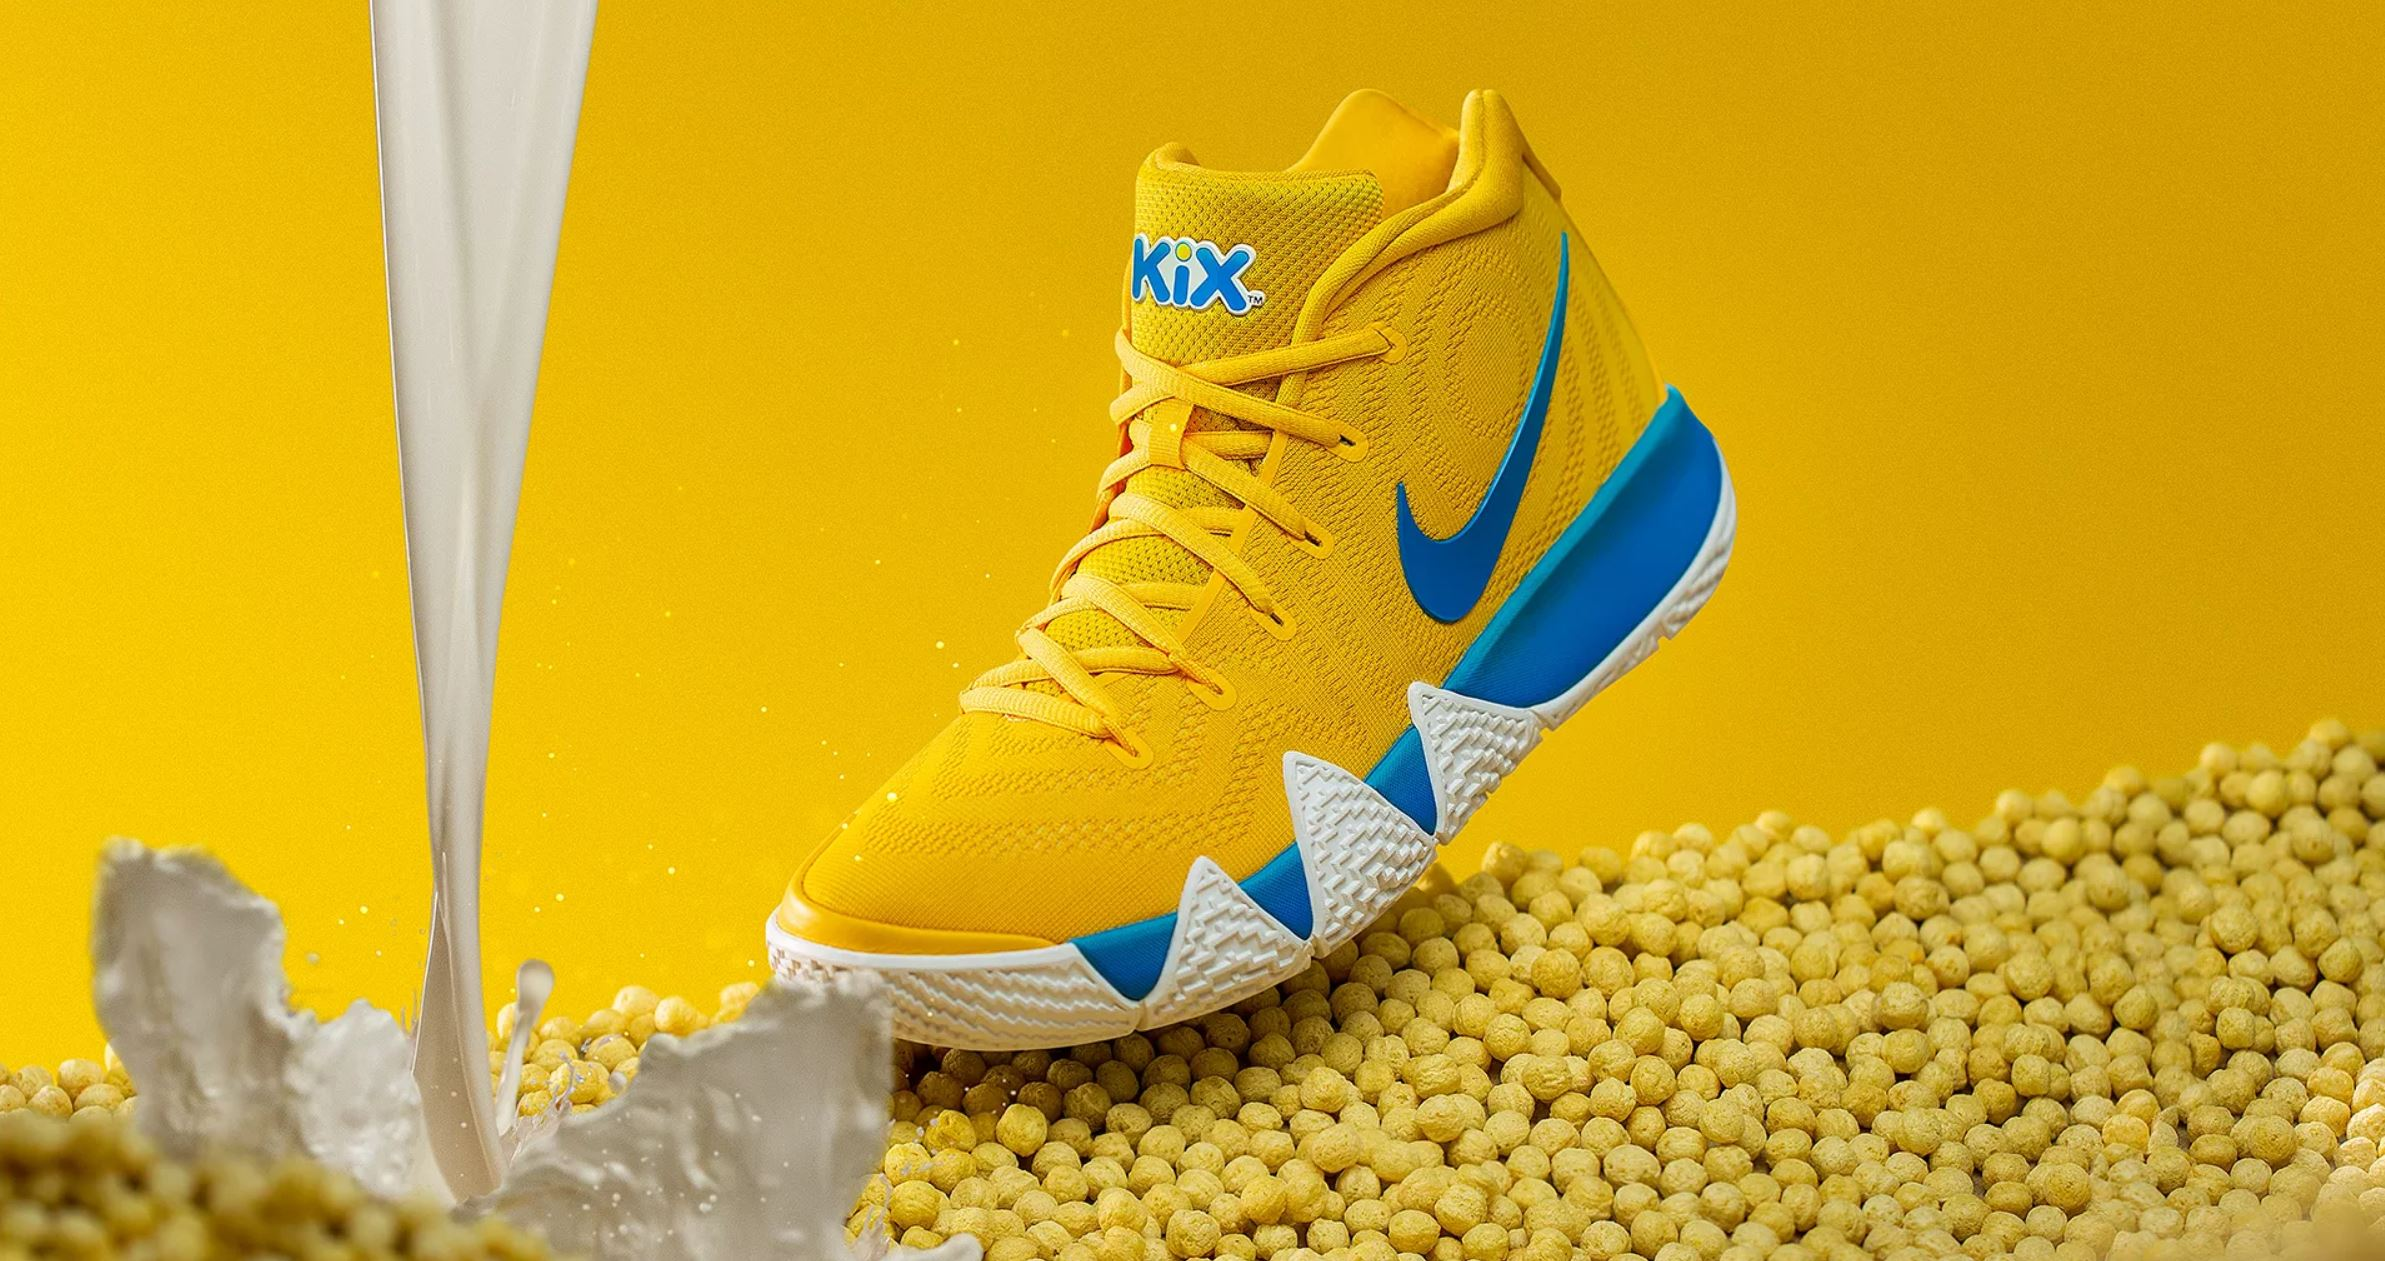 lucky charms shoes kyrie irving